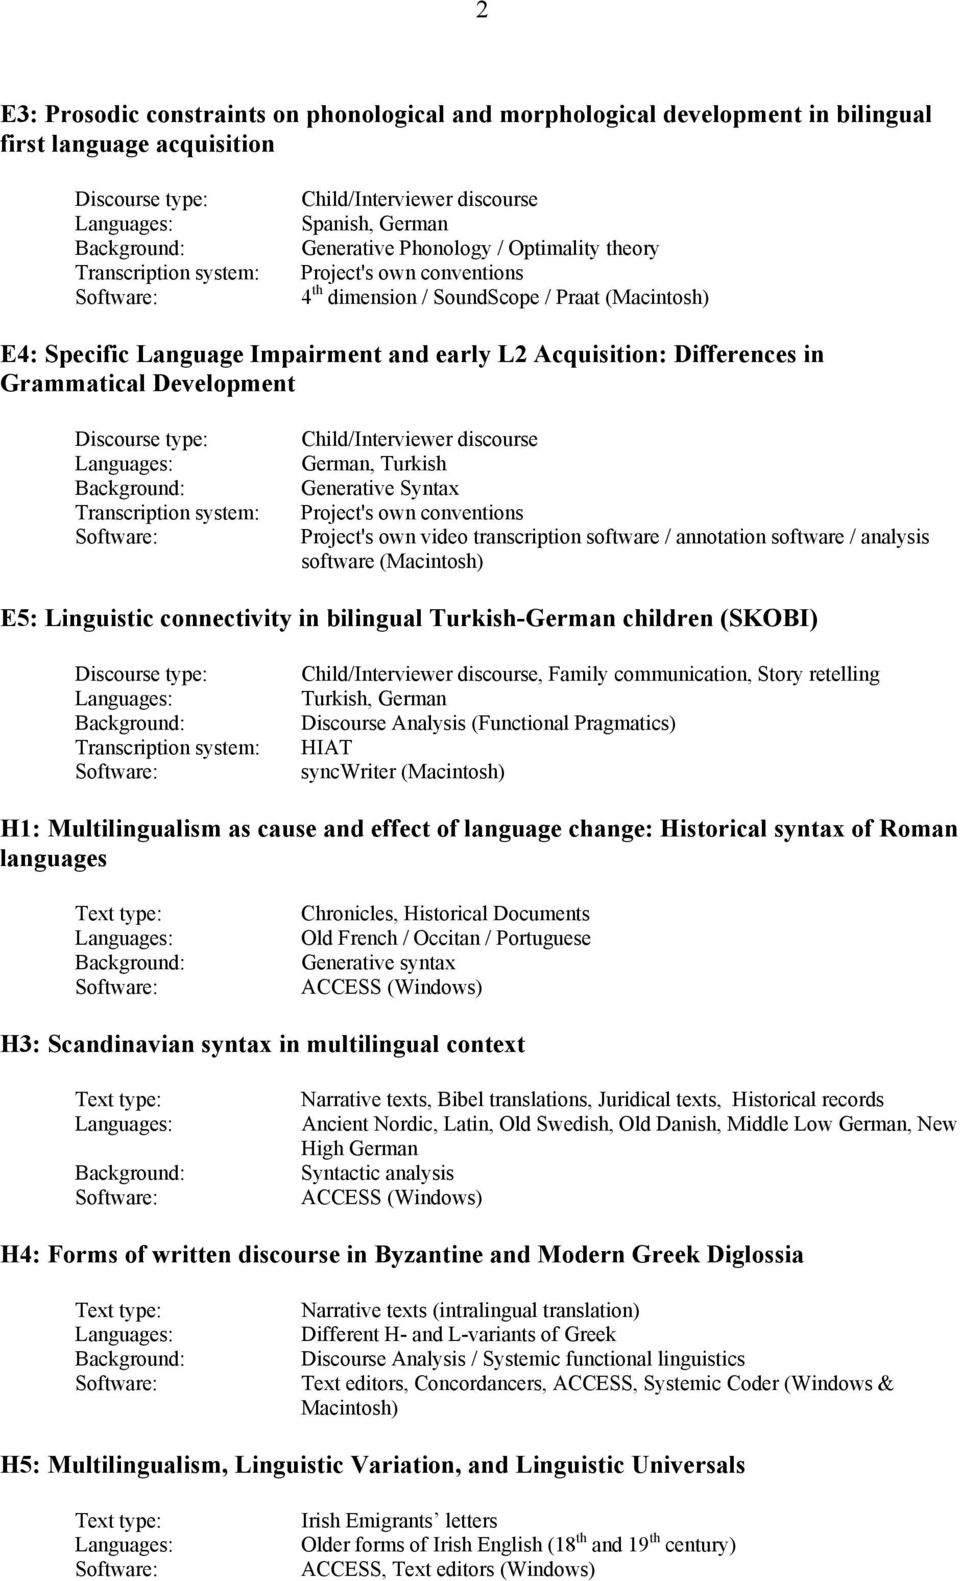 analysis software (Macintosh) E5: Linguistic connectivity in bilingual Turkish-German children (SKOBI), Family communication, Story retelling Turkish, German H1: Multilingualism as cause and effect